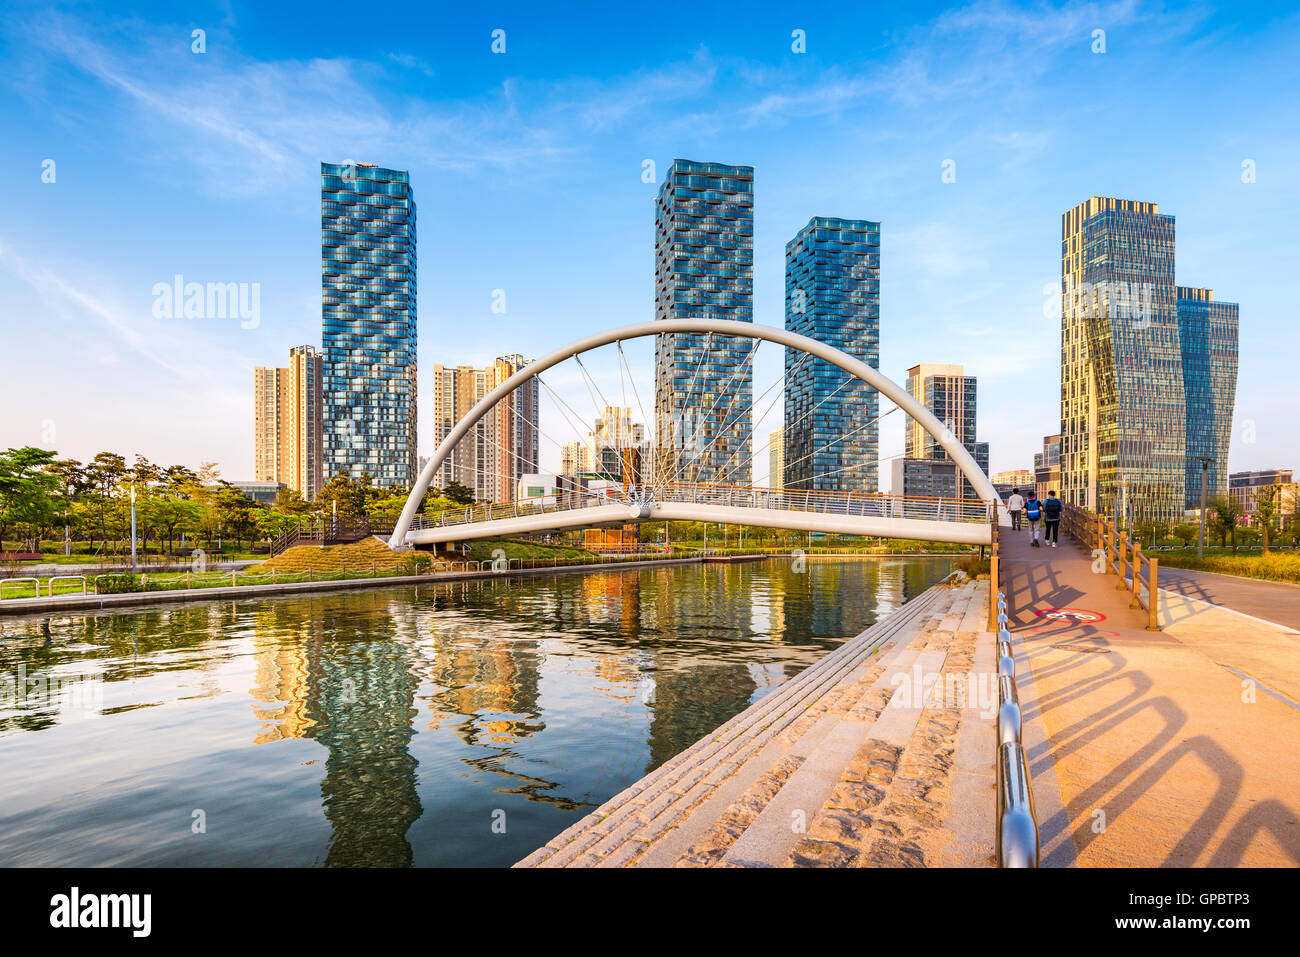 Incheon,Central Park in Songdo International Business District , South Korea - Stock Image